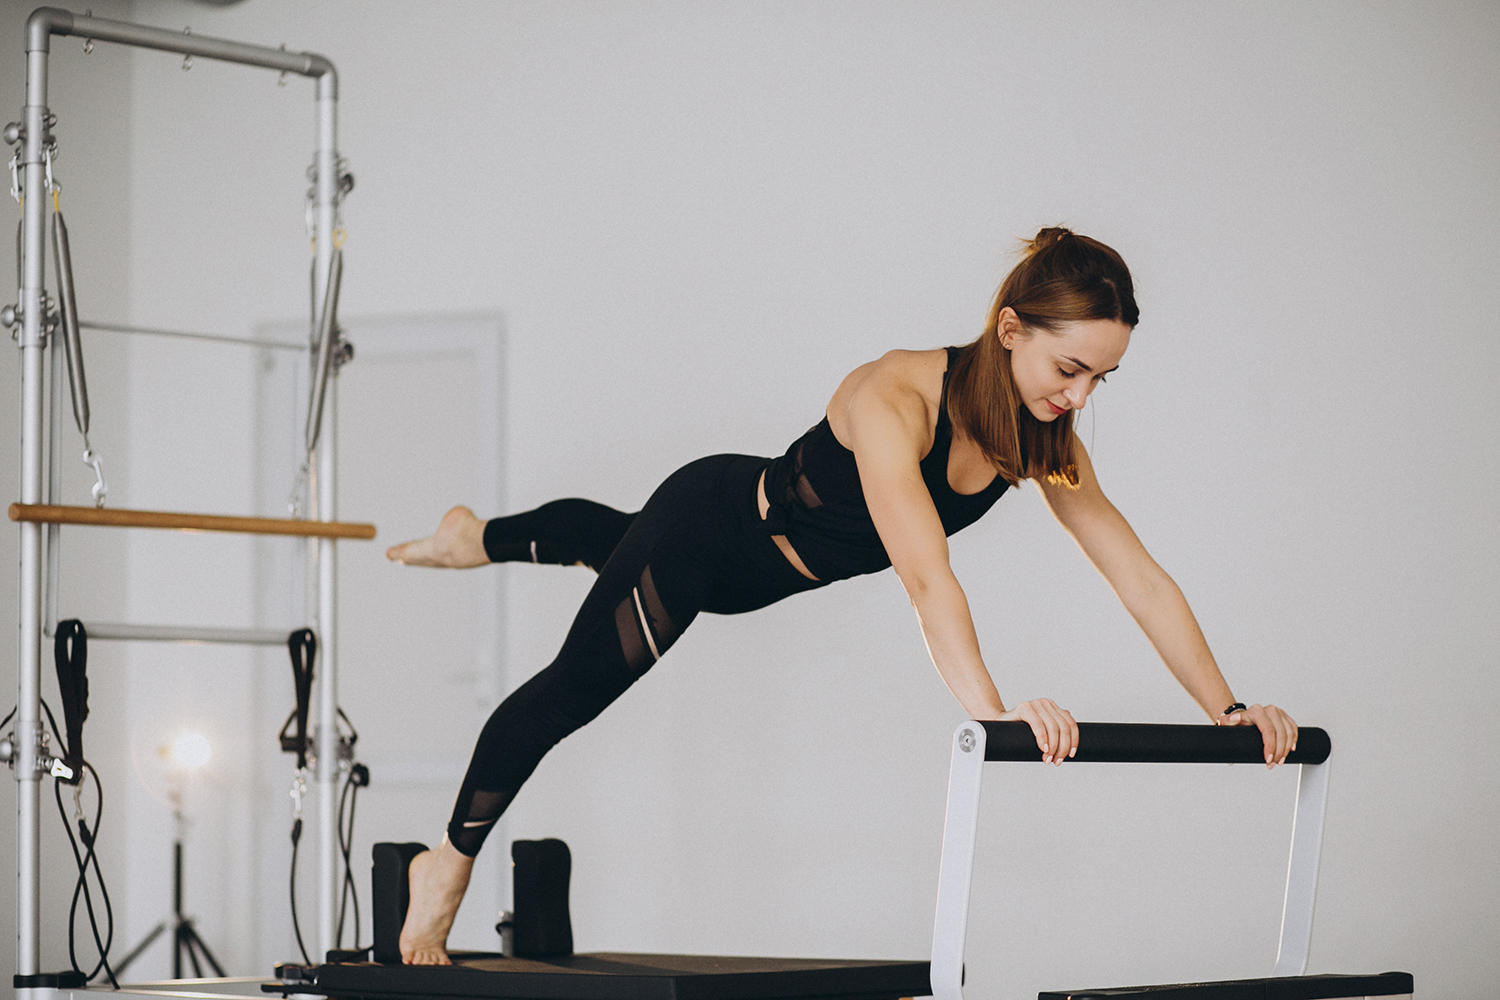 Woman doing pilates on a reformer|pilates|pilates-resources